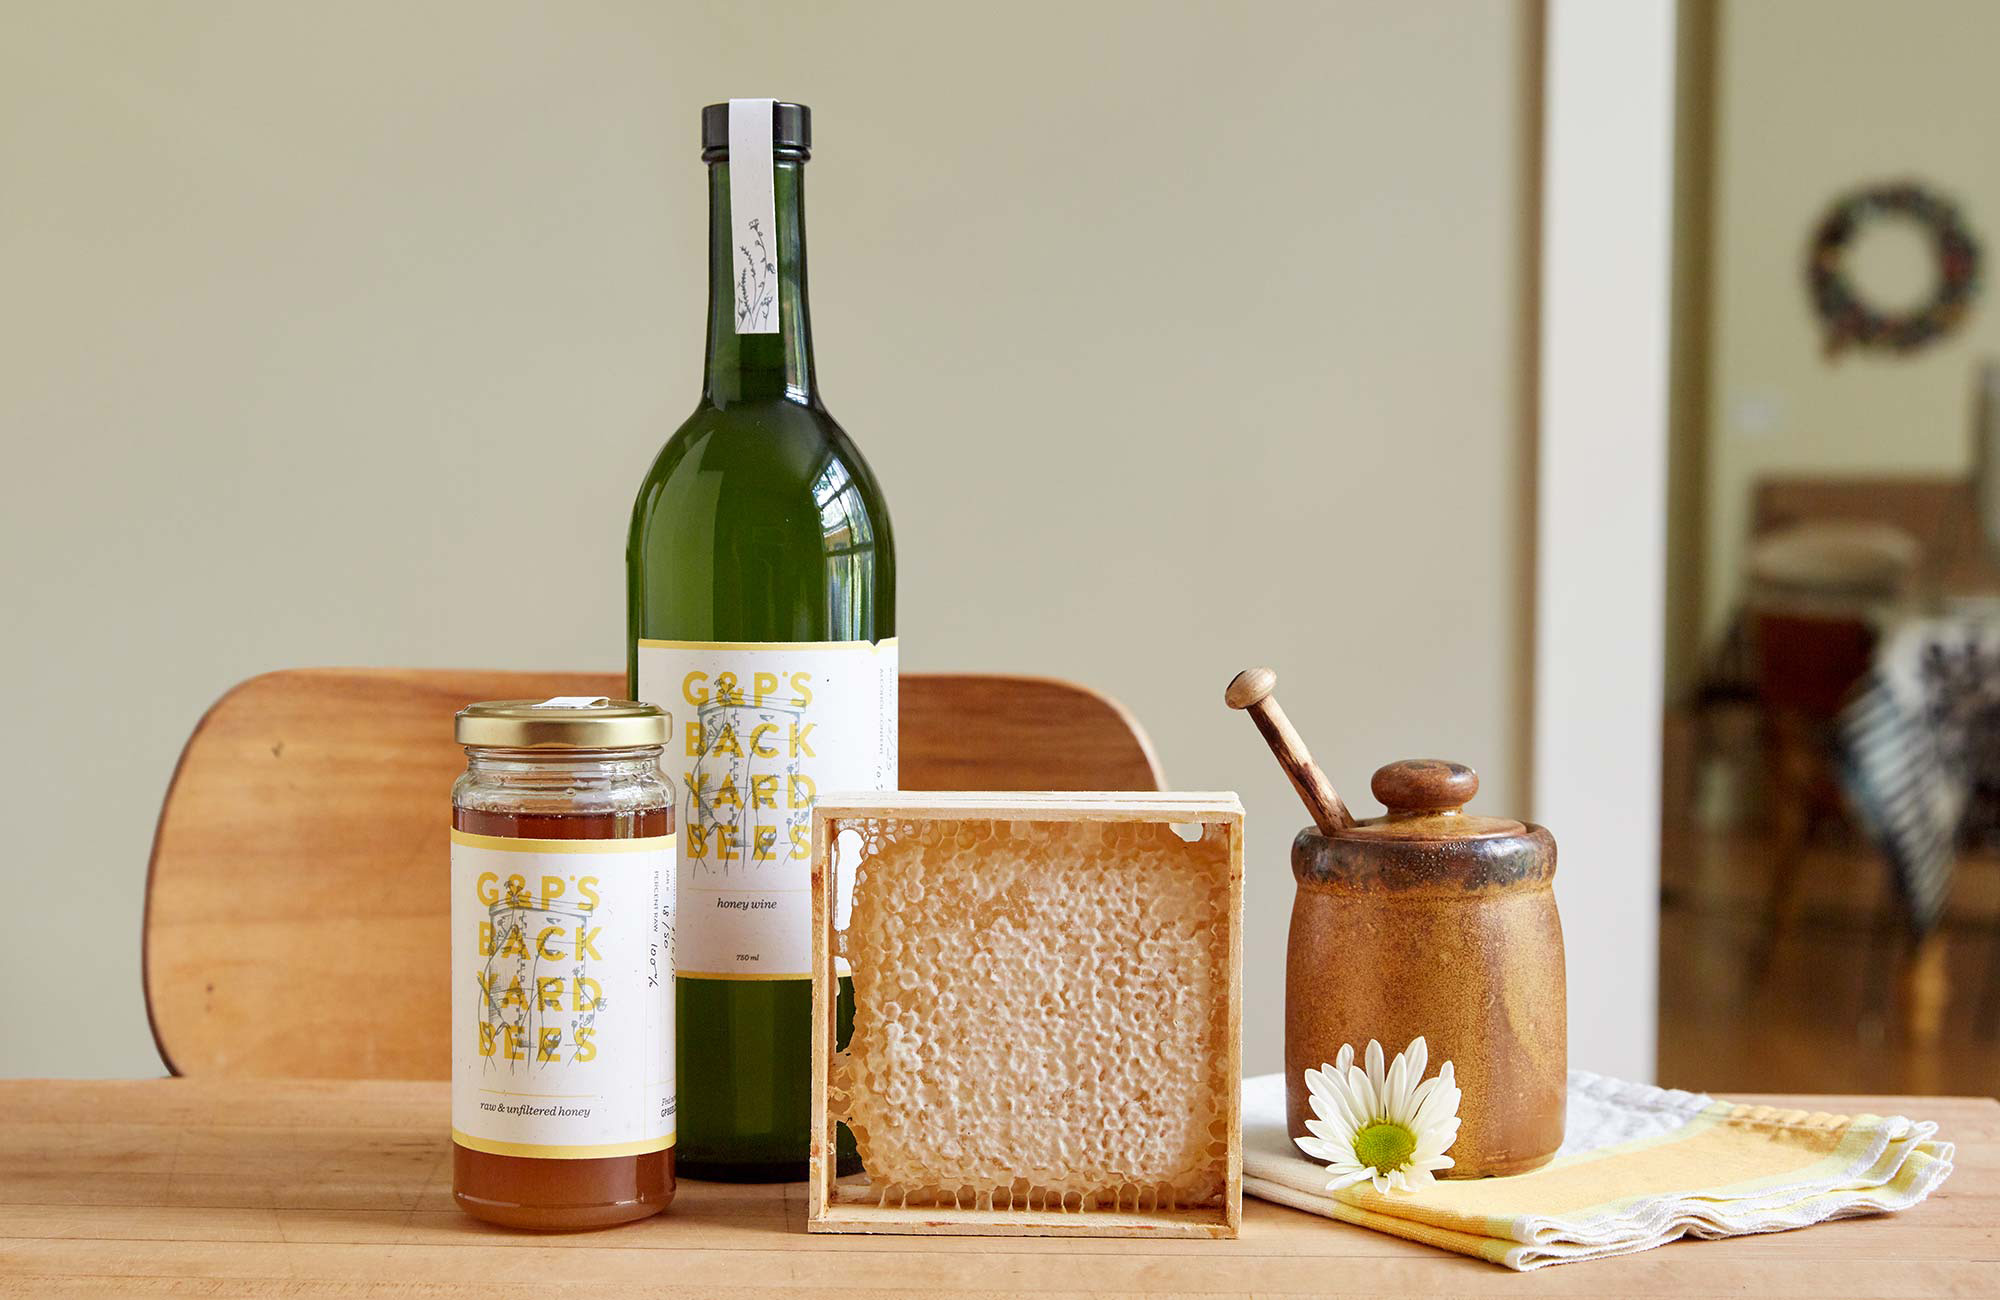 Honey jar and honey wine packaging